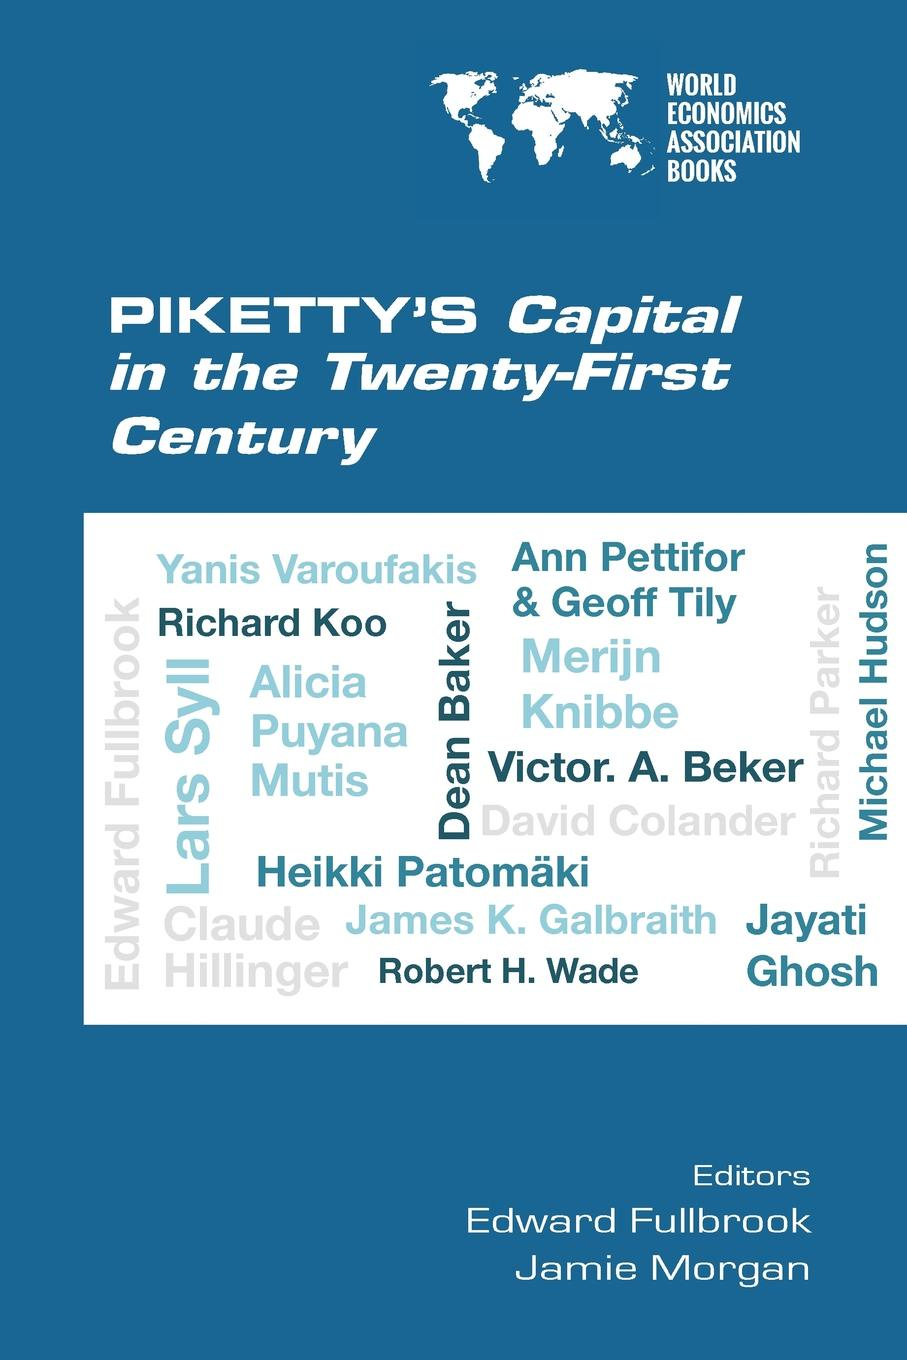 Piketty.s Capital in the Twenty-First Century Thomas Piketty's book Capital in the 21st Century has already...